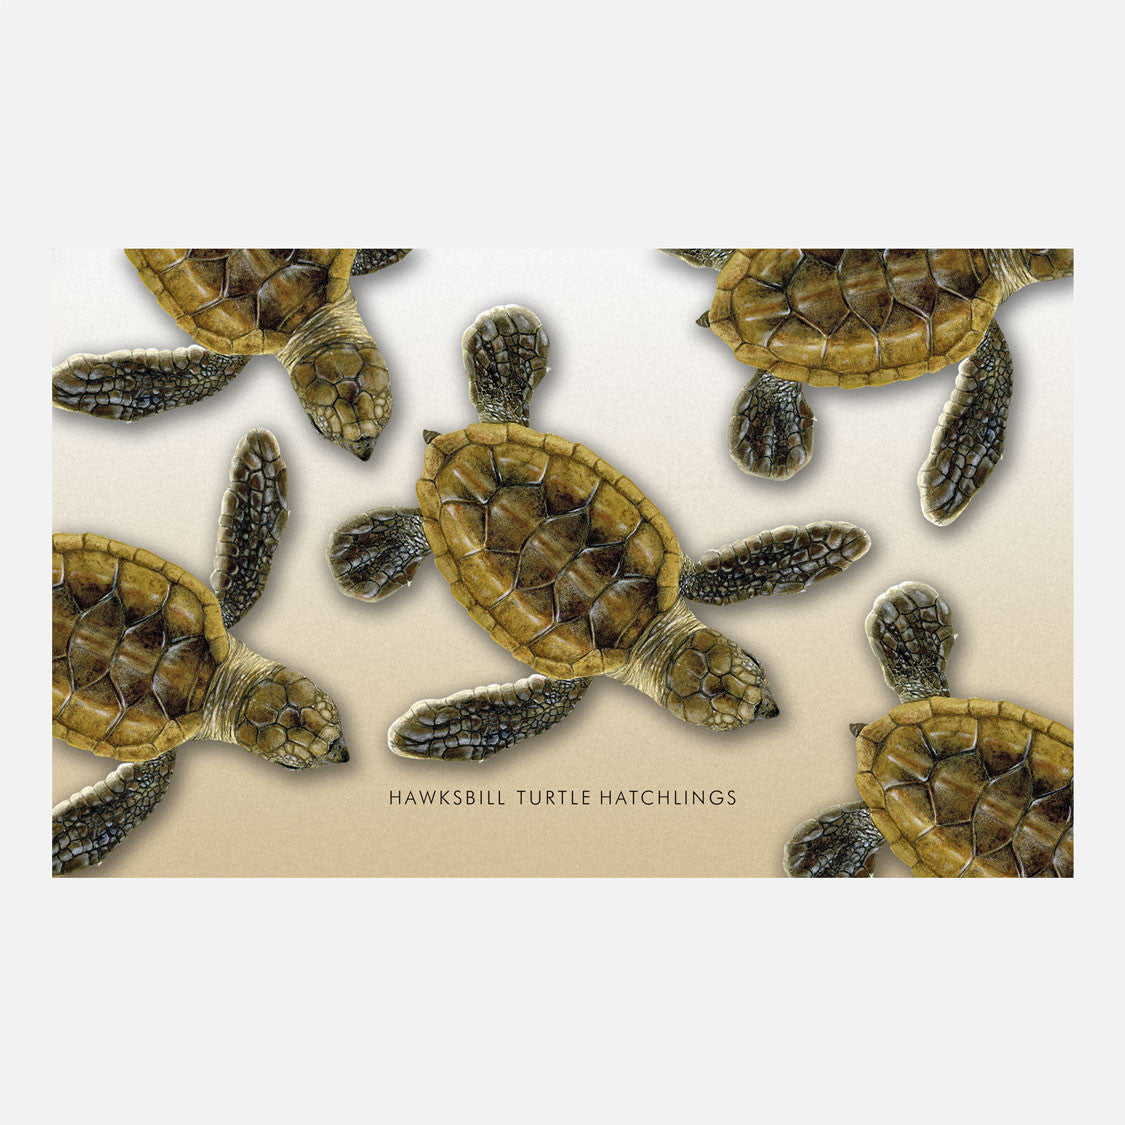 Hawksbill sea turtle hatchlings